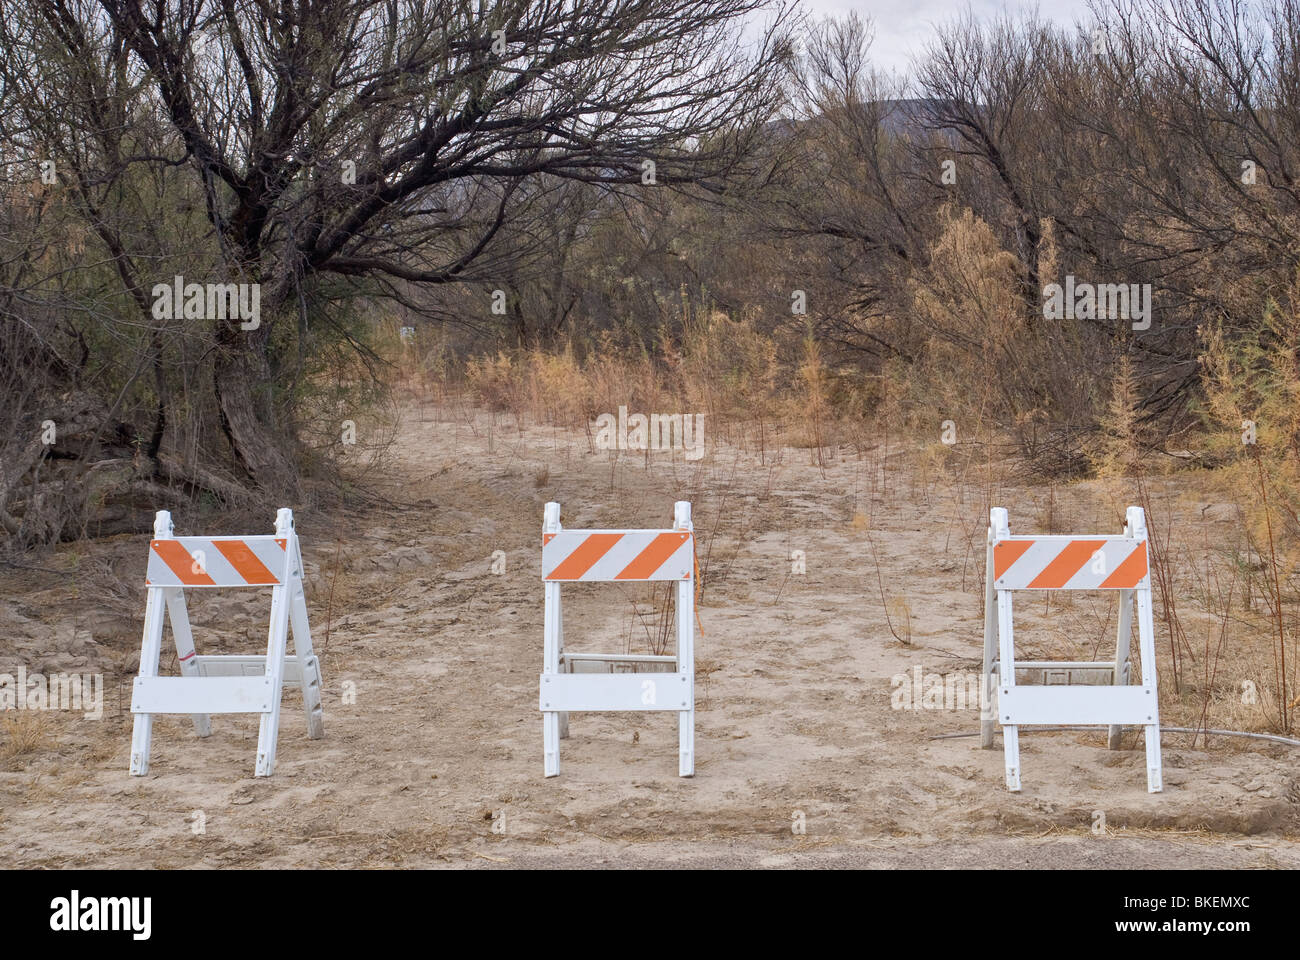 Road to Rio Grande river crossing and Santa Elena village in Mexico, blocked after 09/11, in Big Bend National Park, - Stock Image